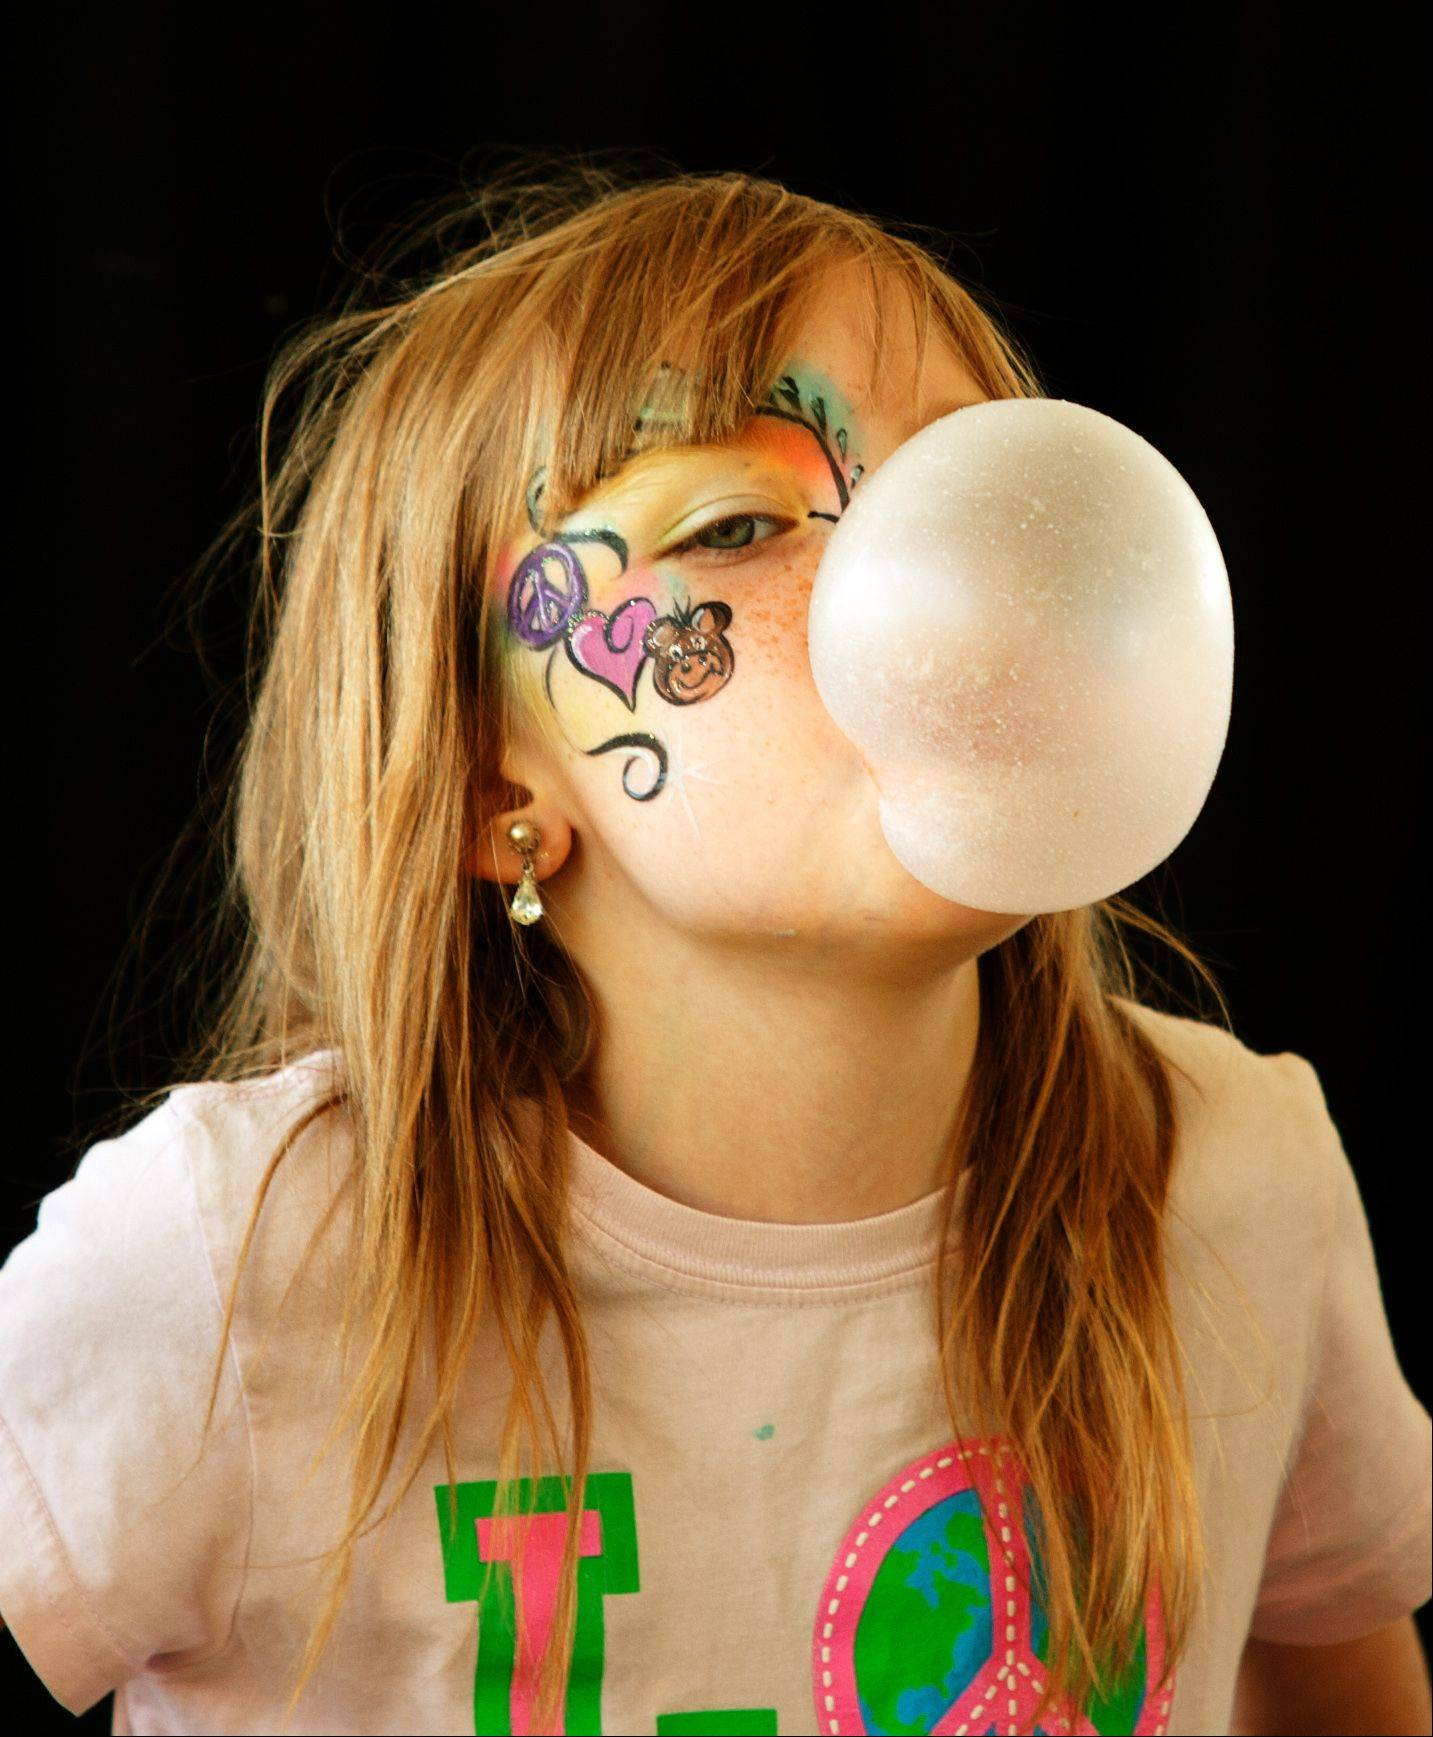 Rianna Culp, 9, of Crystal Lake, wins the bubble gum blowing contest.